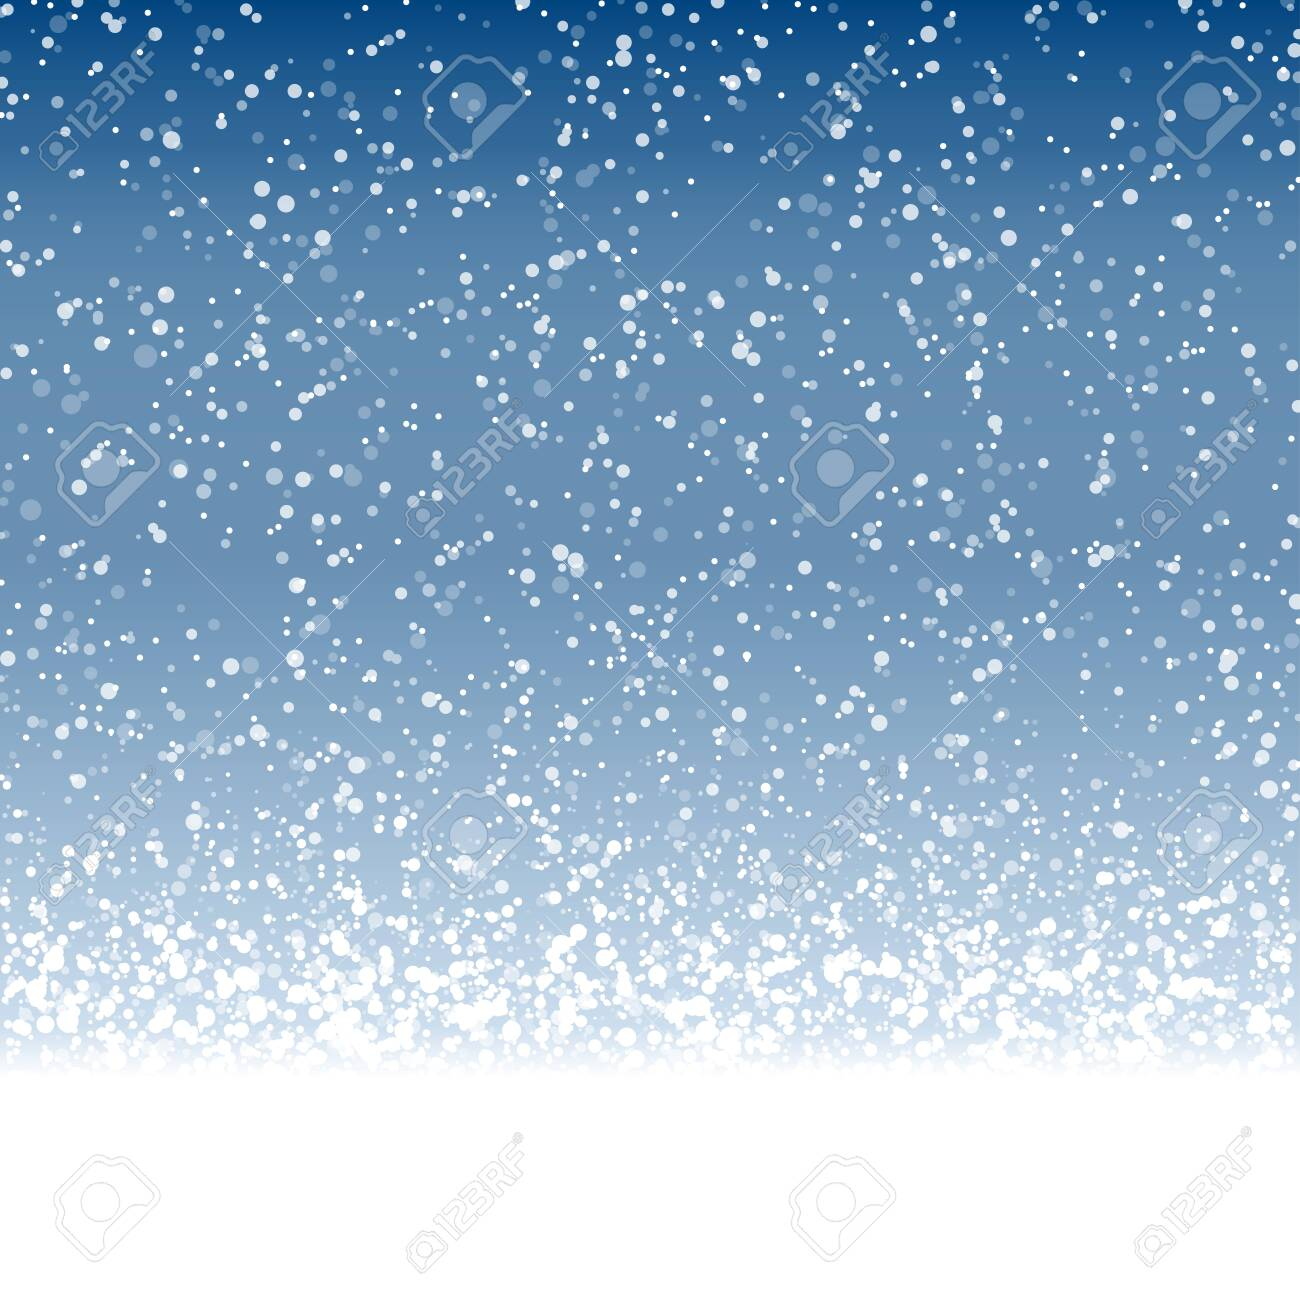 vector file with beautiful falling snow flakes on blue colored background - 134068098